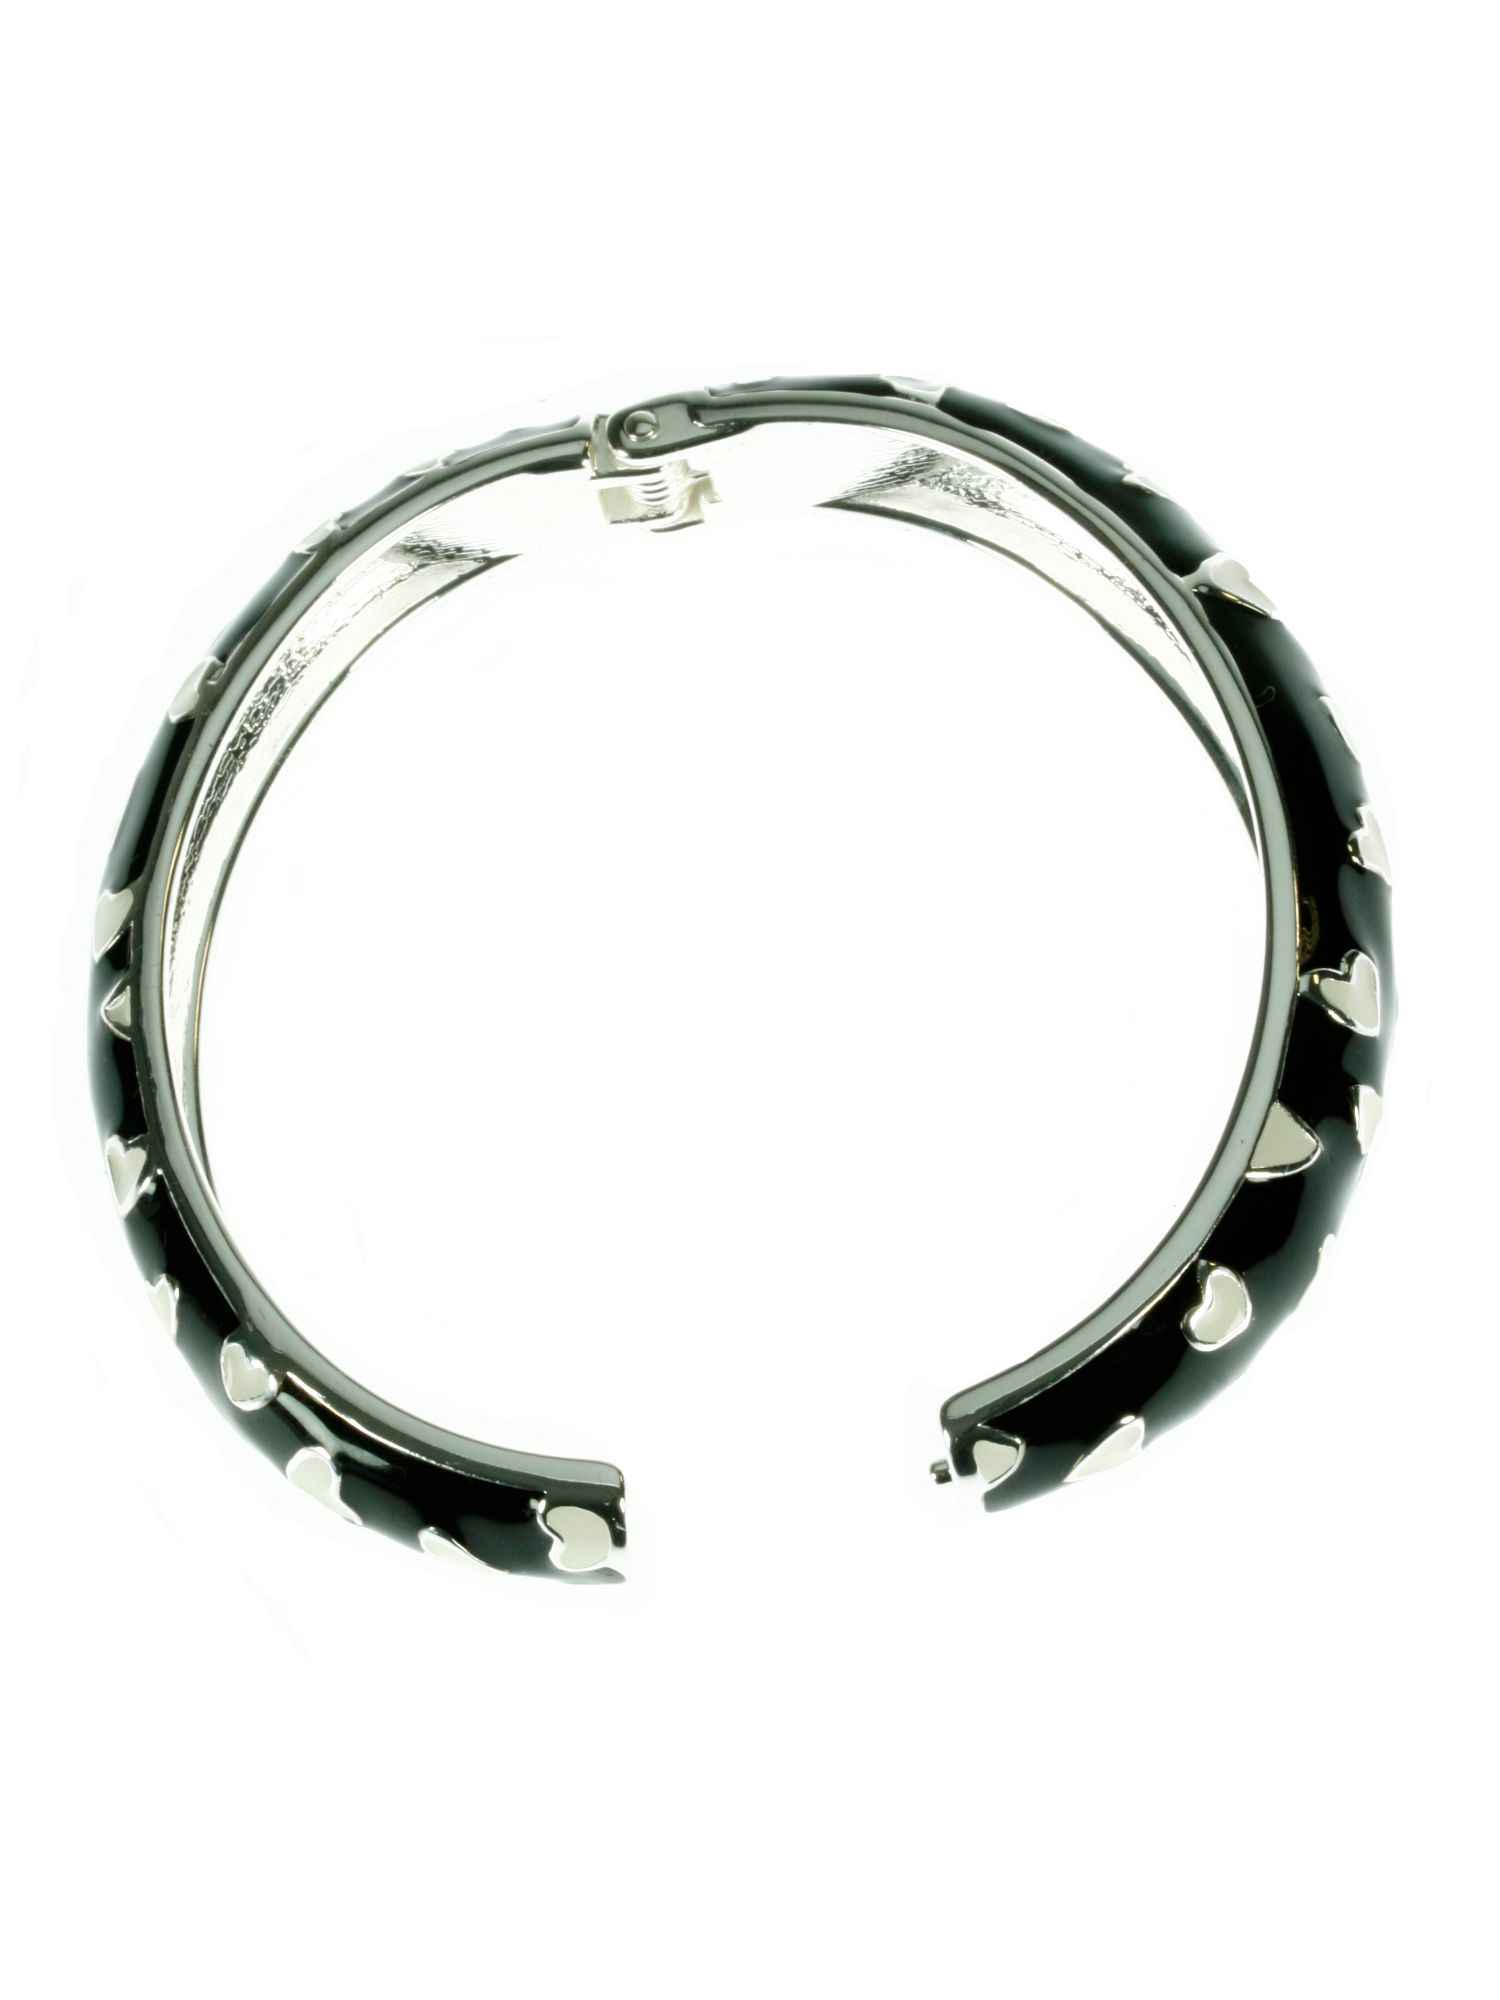 Black and creamy white spring hinged bangle